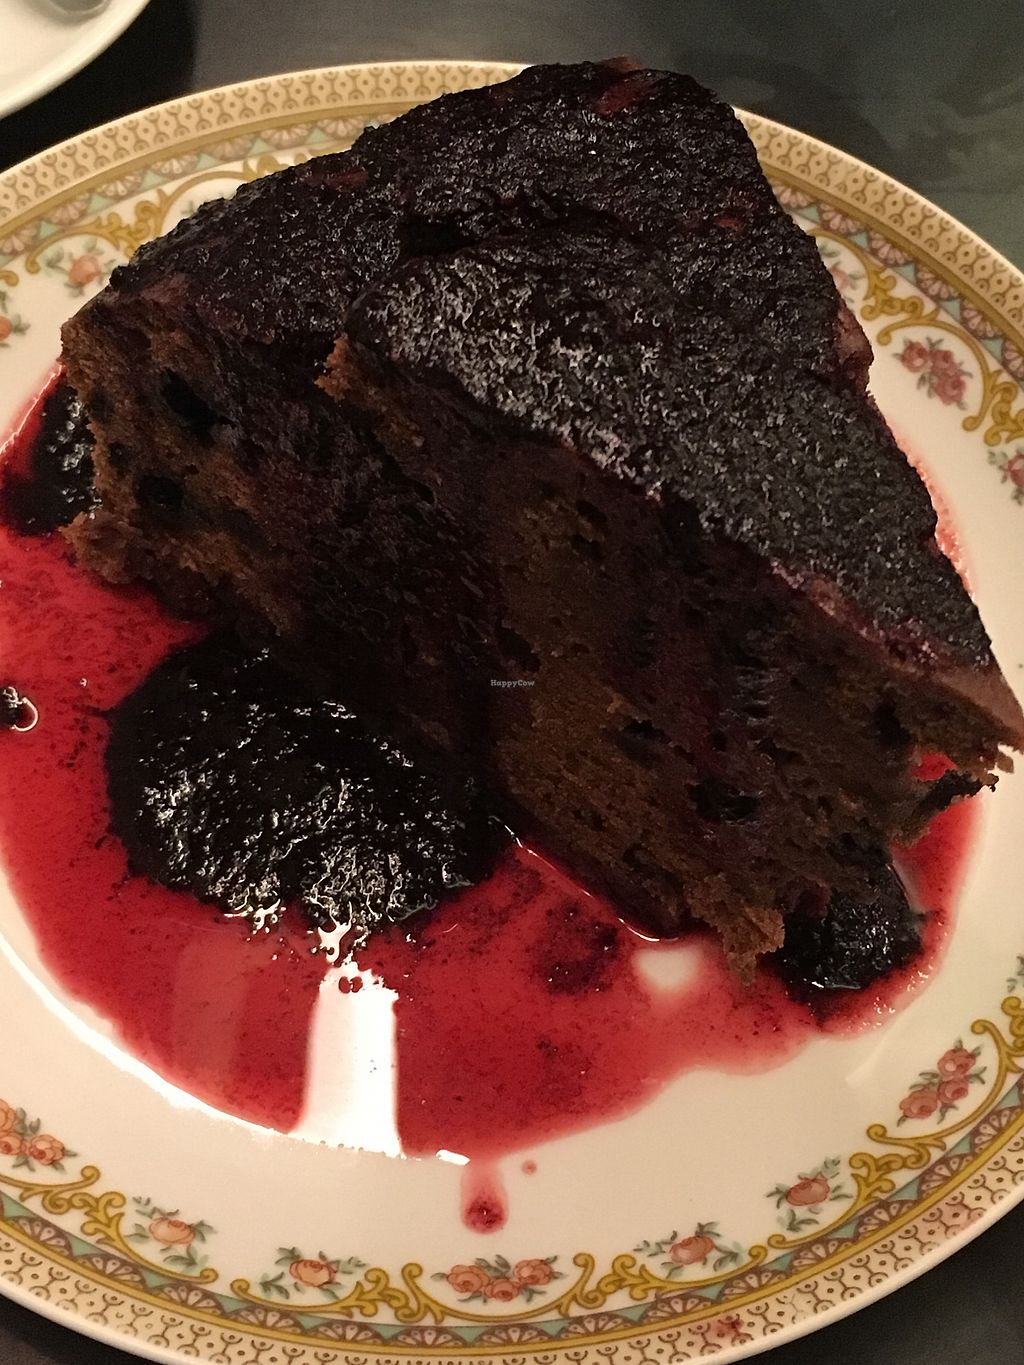 "Photo of Cafe Bar 67  by <a href=""/members/profile/hokusai77"">hokusai77</a> <br/>Vegan chocolate raspberry cake <br/> December 30, 2017  - <a href='/contact/abuse/image/103996/341046'>Report</a>"